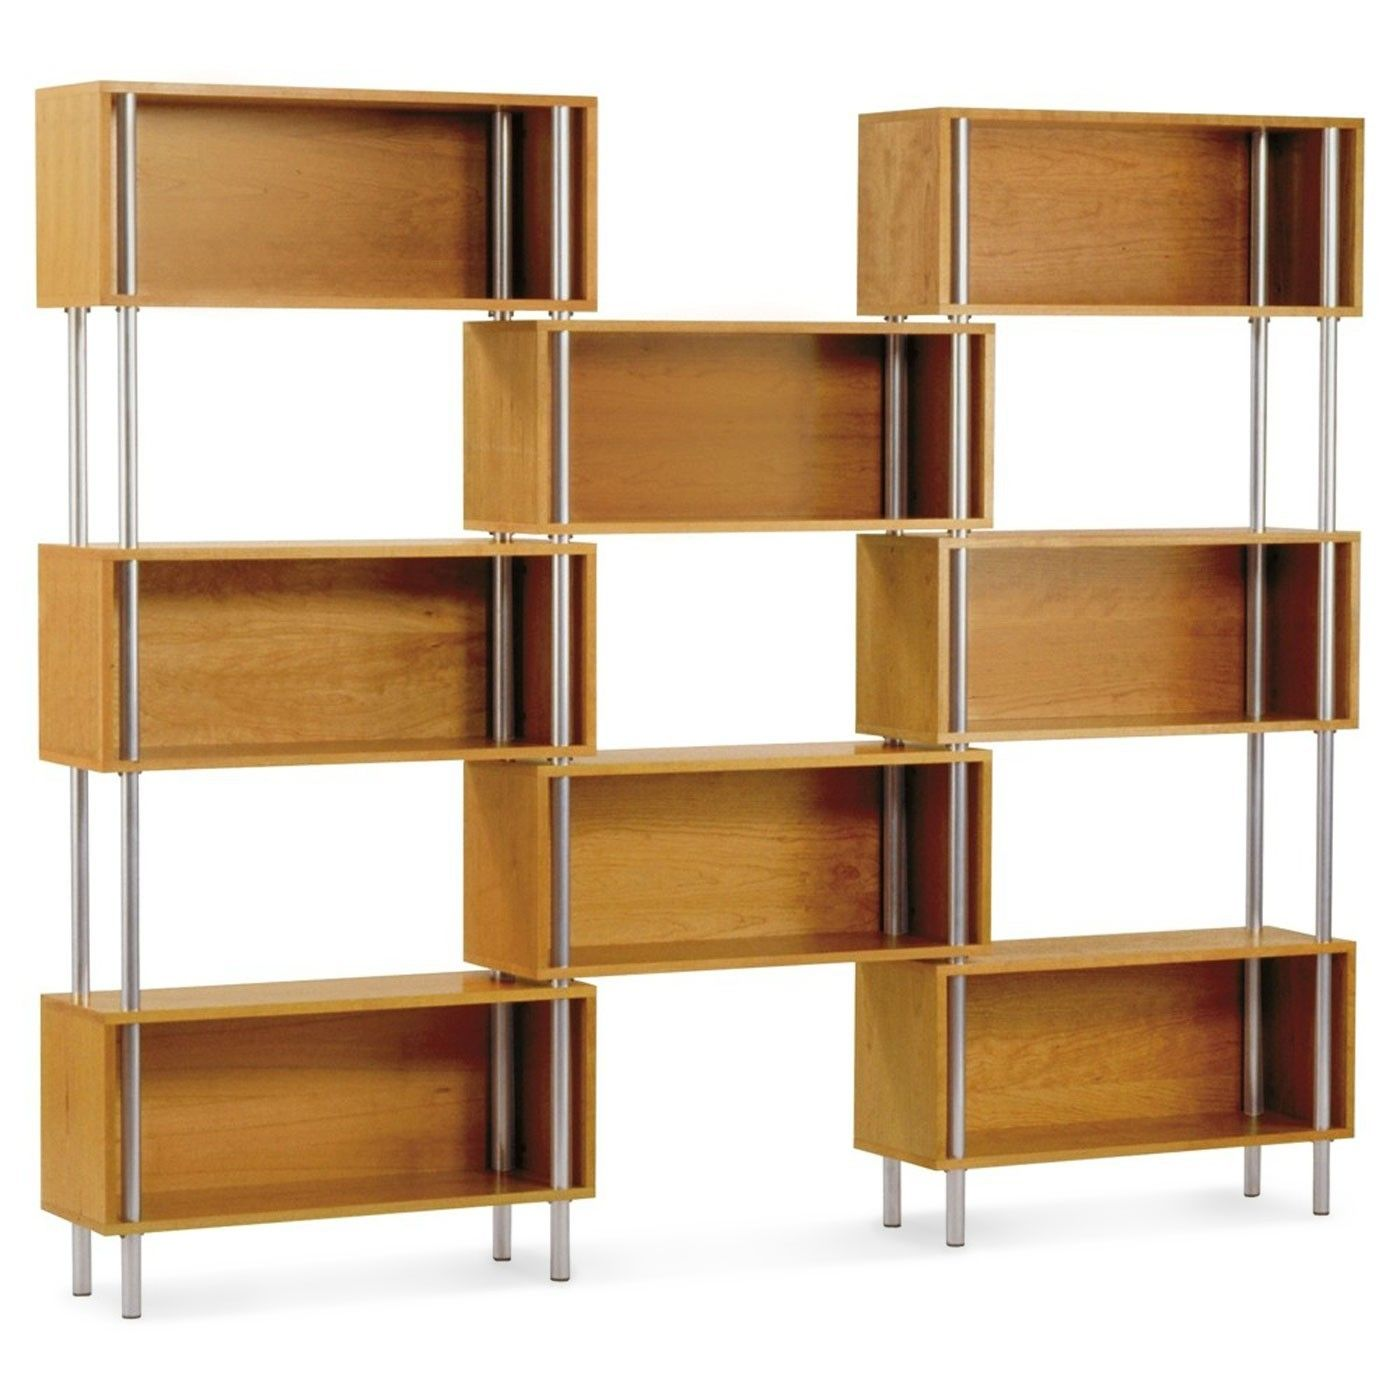 Hanging Wall Bookcase accessories & furniture,mesmerizing hanging shelving systems with